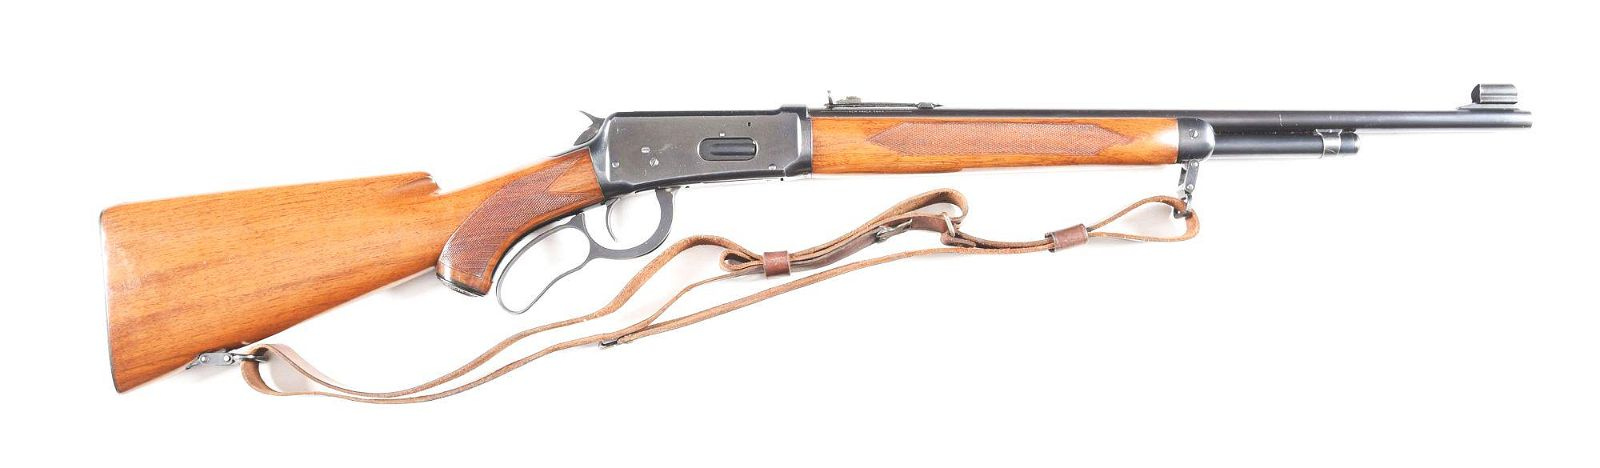 (C) WINCHESTER MODEL 64 DELUXE LEVER ACTION CARBINE IN